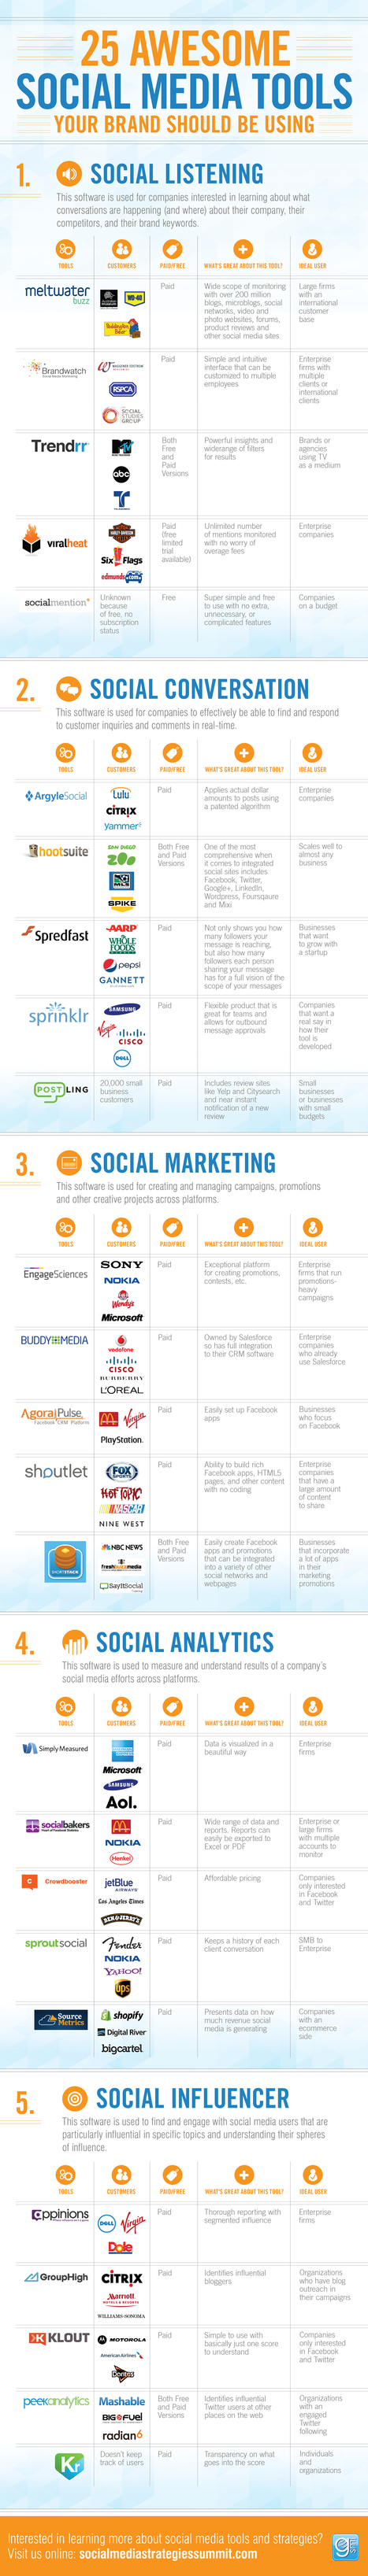 25 Awesome Social Media Tools Your Brand Should Be Using [INFOGRAPHIC] | Misc Techno | Scoop.it